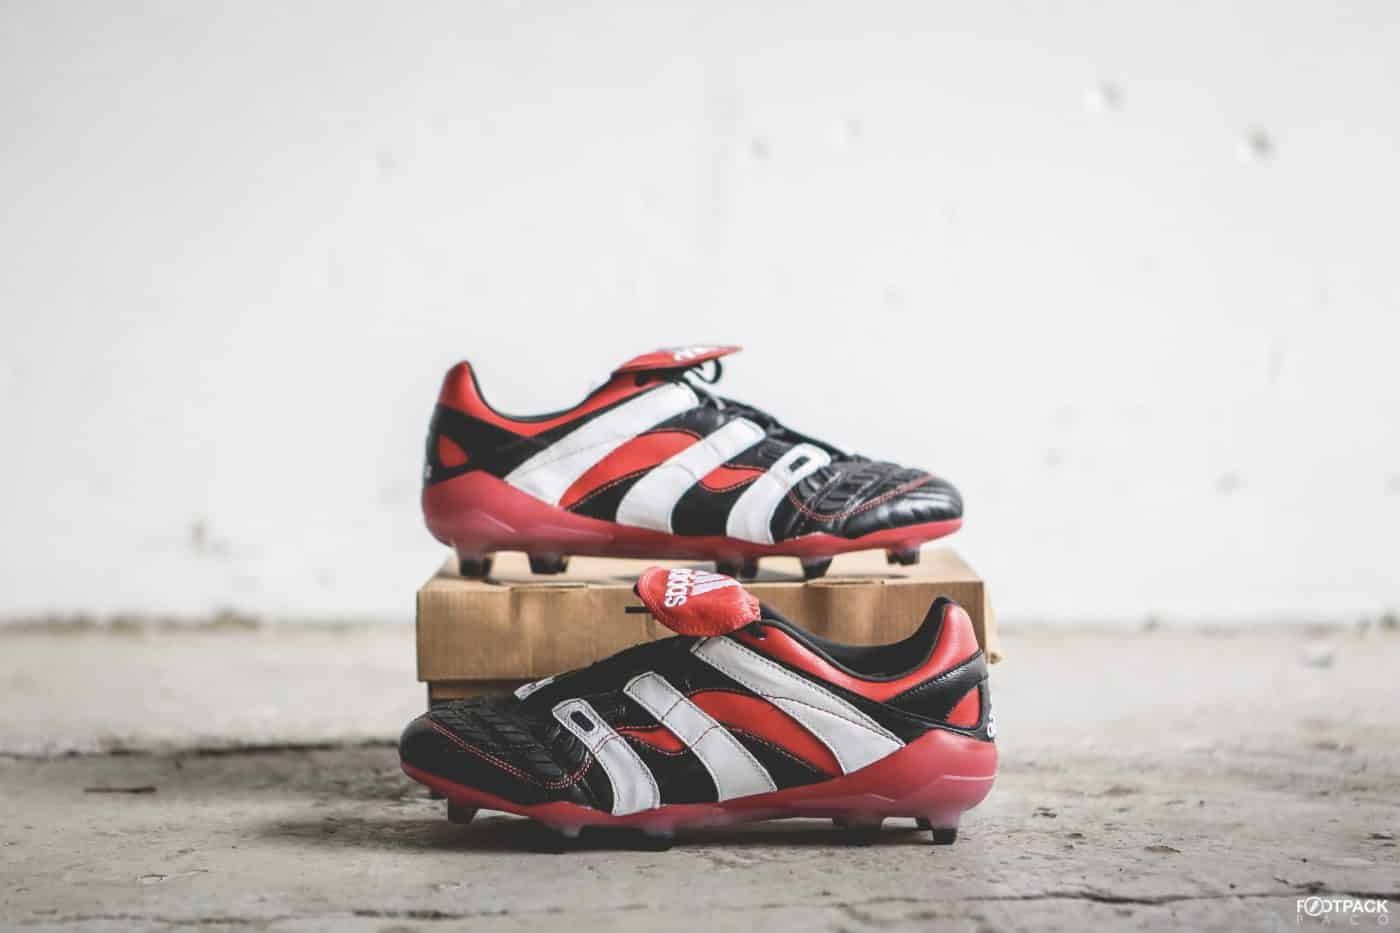 chaussures-foot-adidas-predator-accelerator-reedition-2018-footpack-1